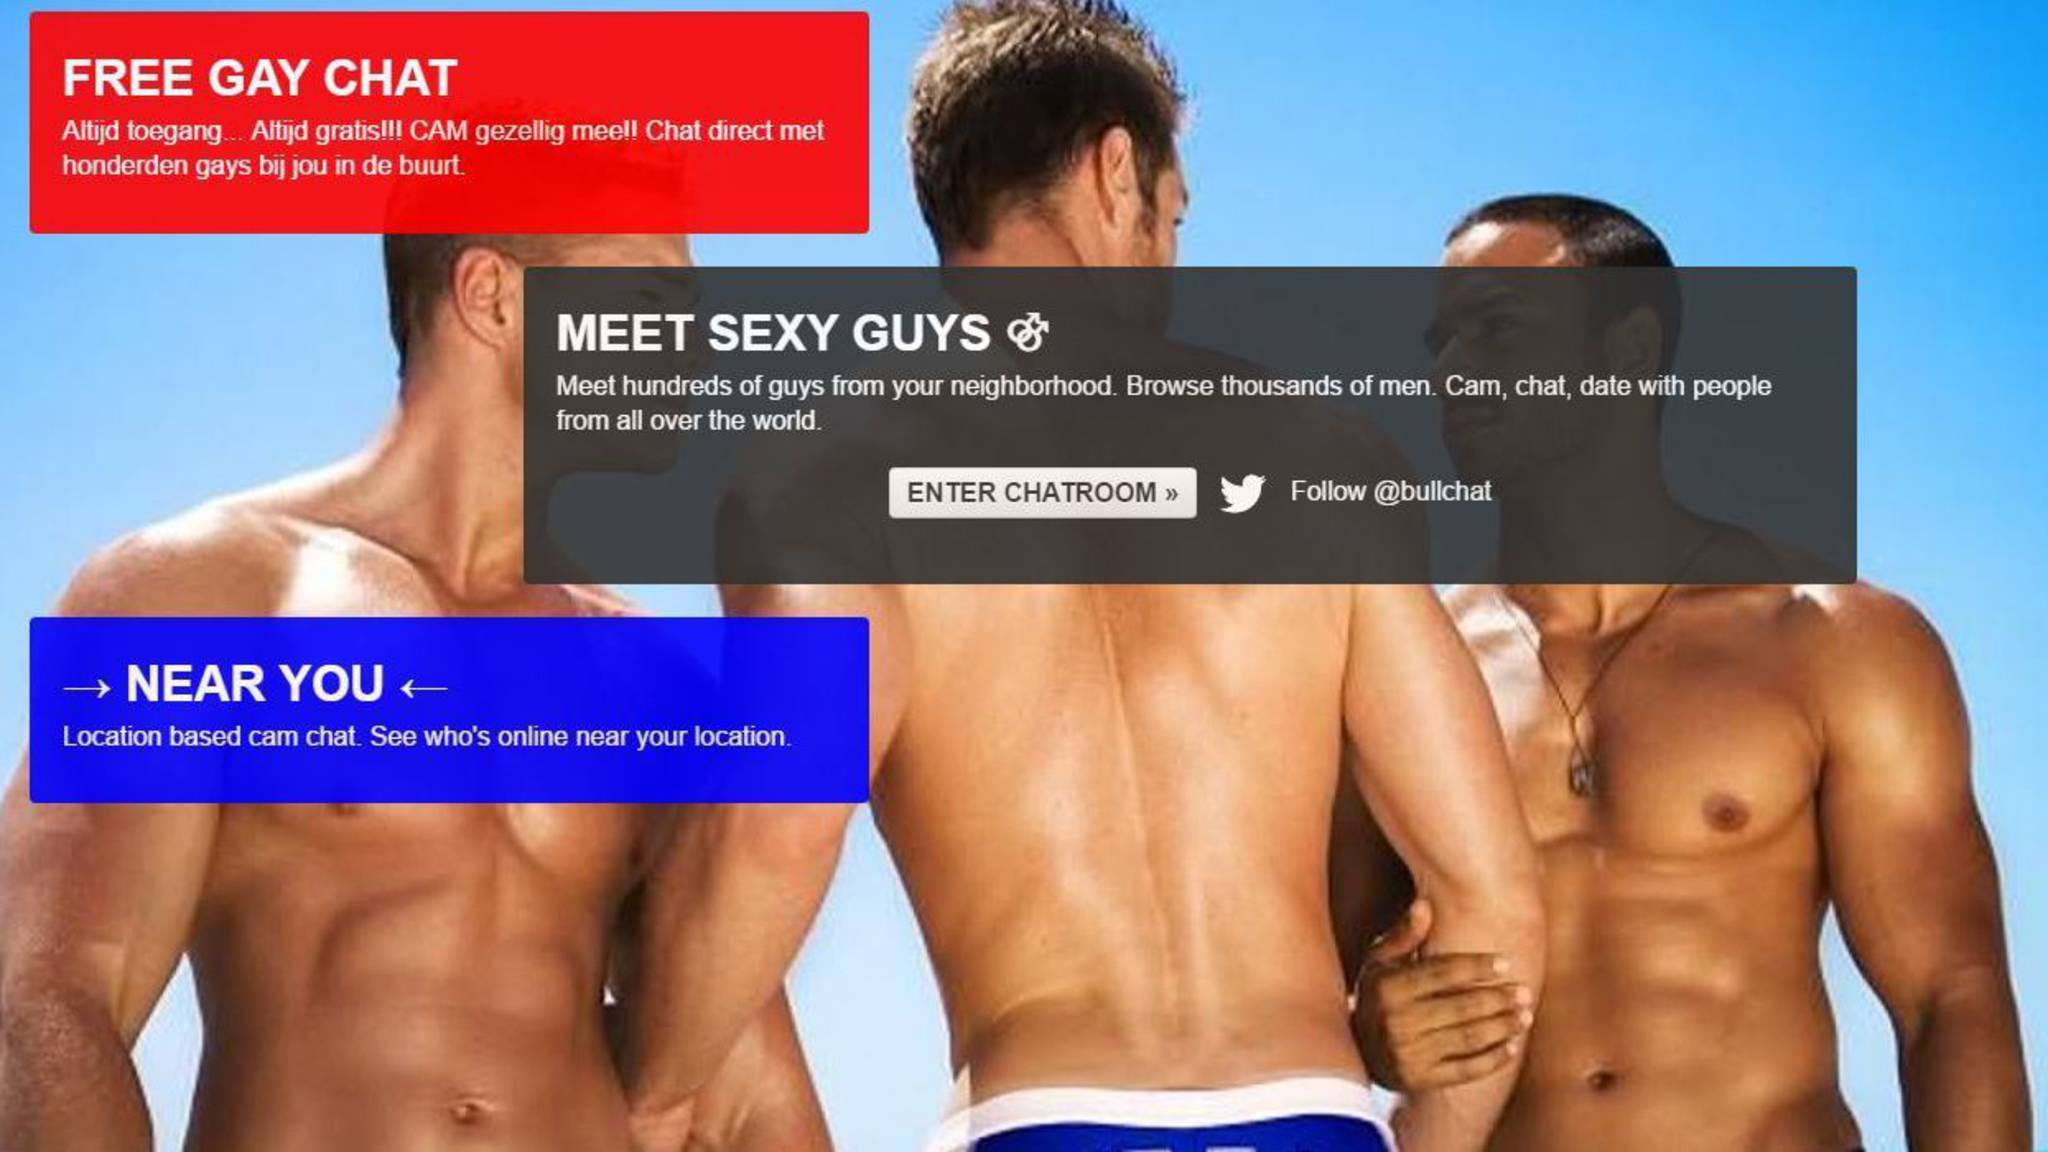 Gratis gay dating service